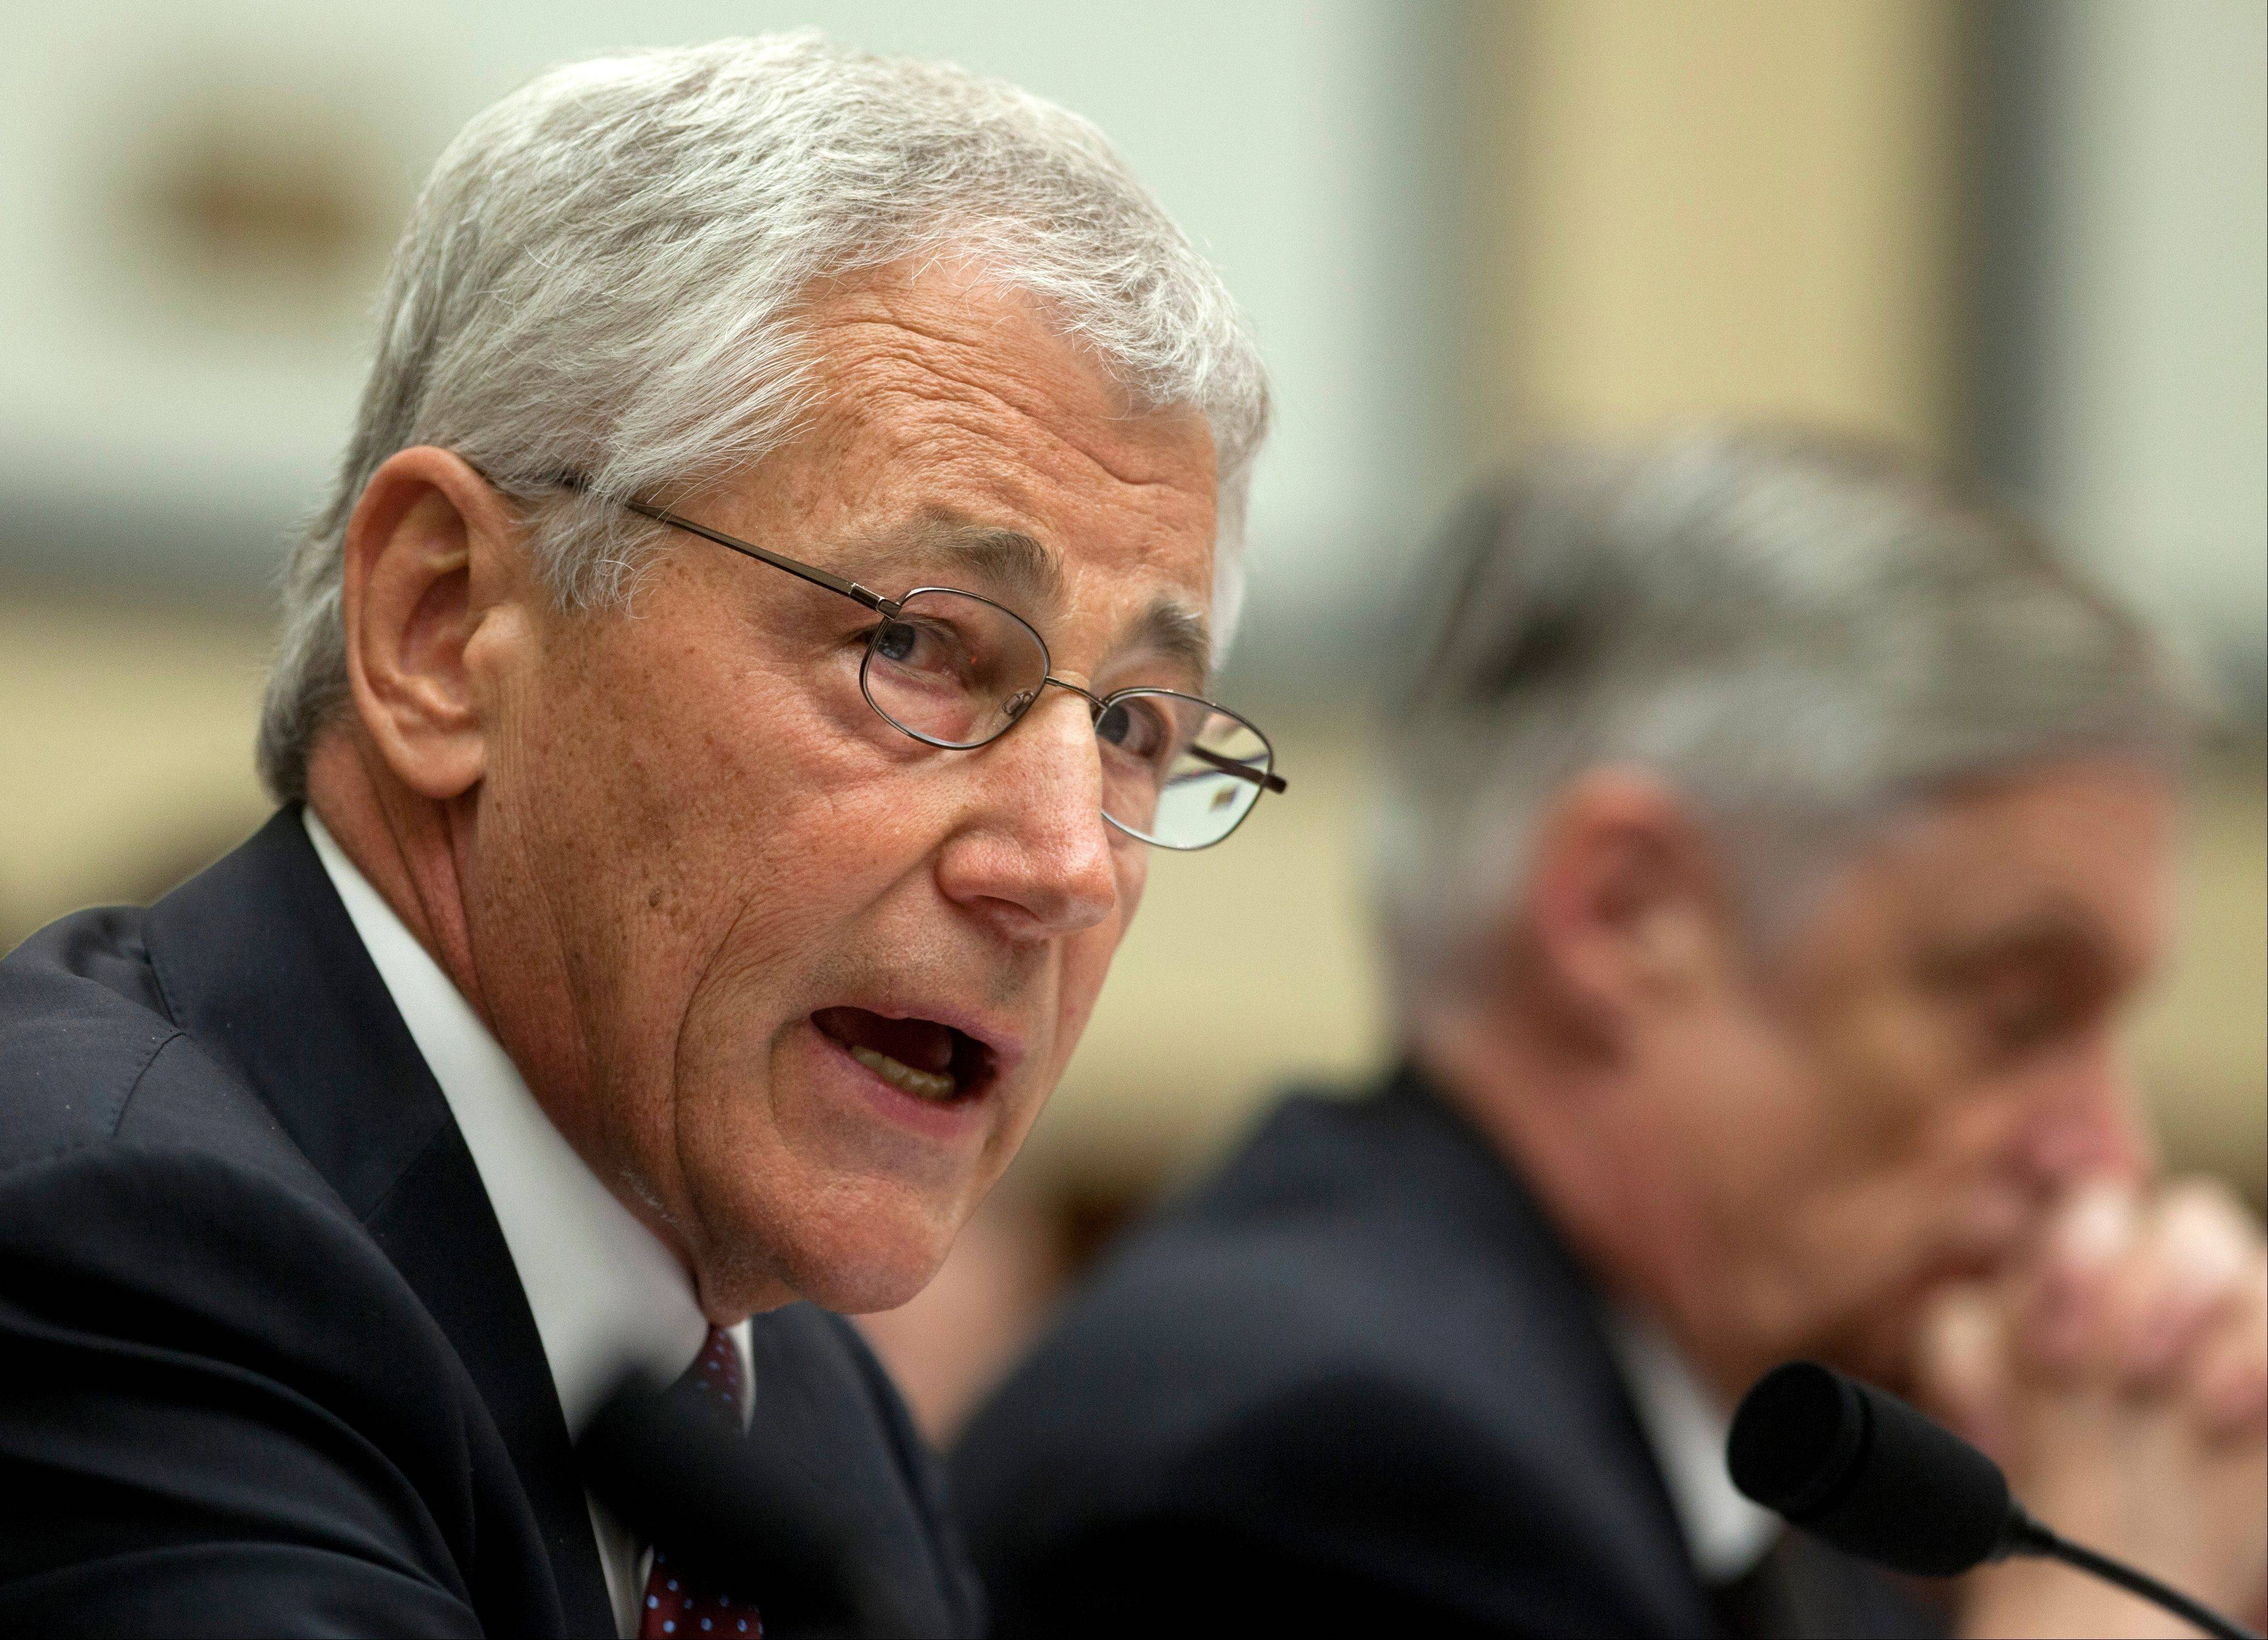 Defense Secretary Chuck Hagel, left, testifies on Capitol Hill in Washington, Thursday, April 11, 2013, before the House Armed Services Committee hearing on the Defense Department�s fiscal 2014 National Defense Authorization Budget Request. At right is Defense Undersecretary, Comptroller Robert F. Hale.